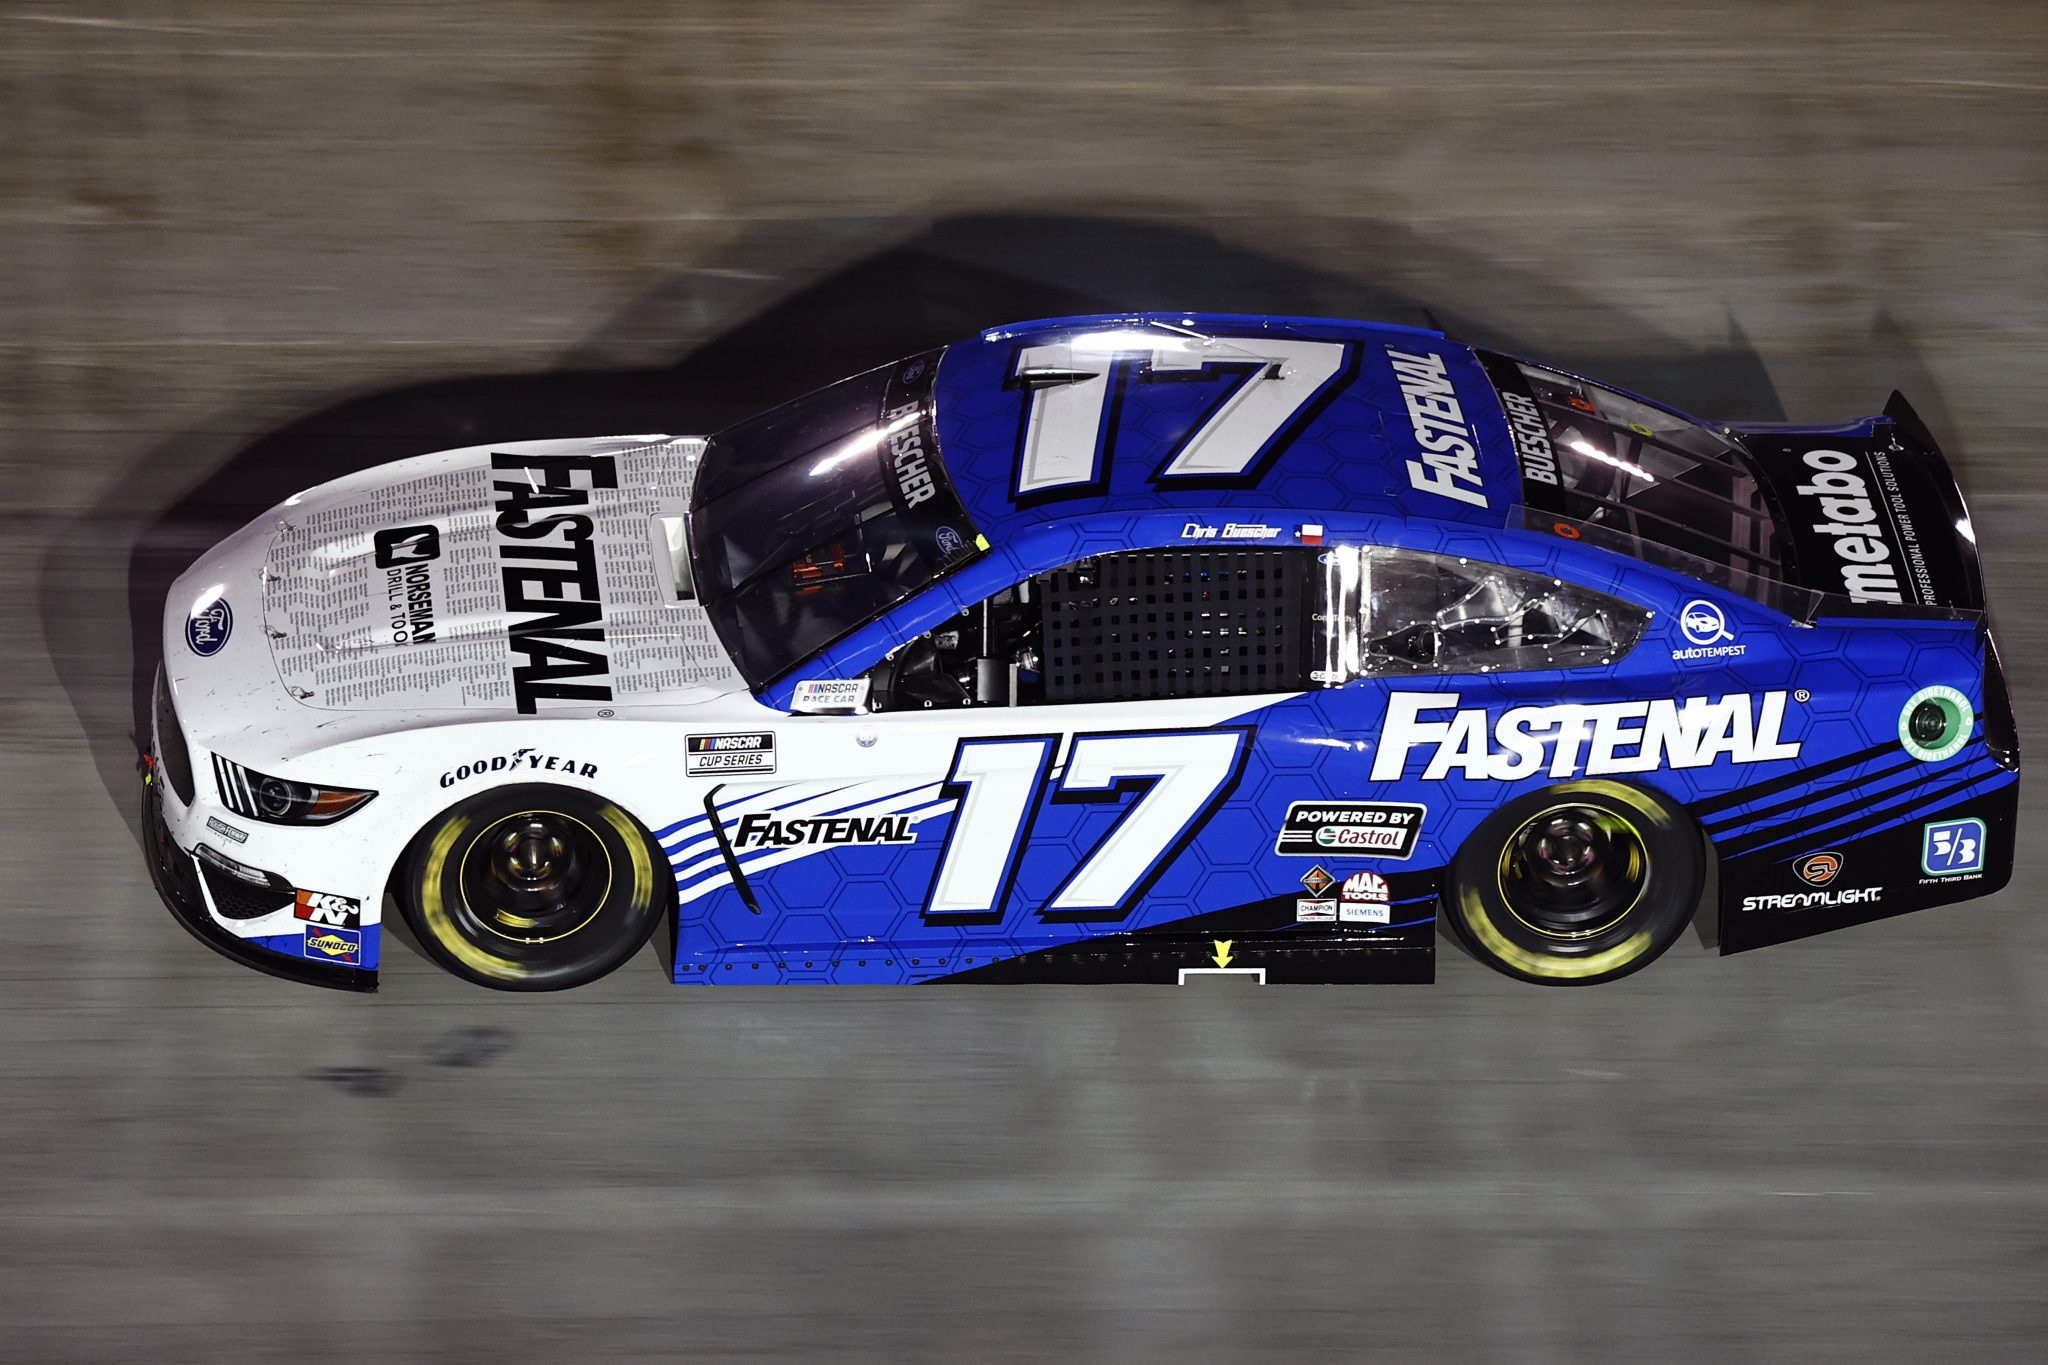 BRISTOL, TENNESSEE - SEPTEMBER 18: Chris Buescher, driver of the #17 Fastenal Ford, drives during the NASCAR Cup Series Bass Pro Shops Night Race at Bristol Motor Speedway on September 18, 2021 in Bristol, Tennessee. (Photo by Jared C. Tilton/Getty Images) | Getty Images